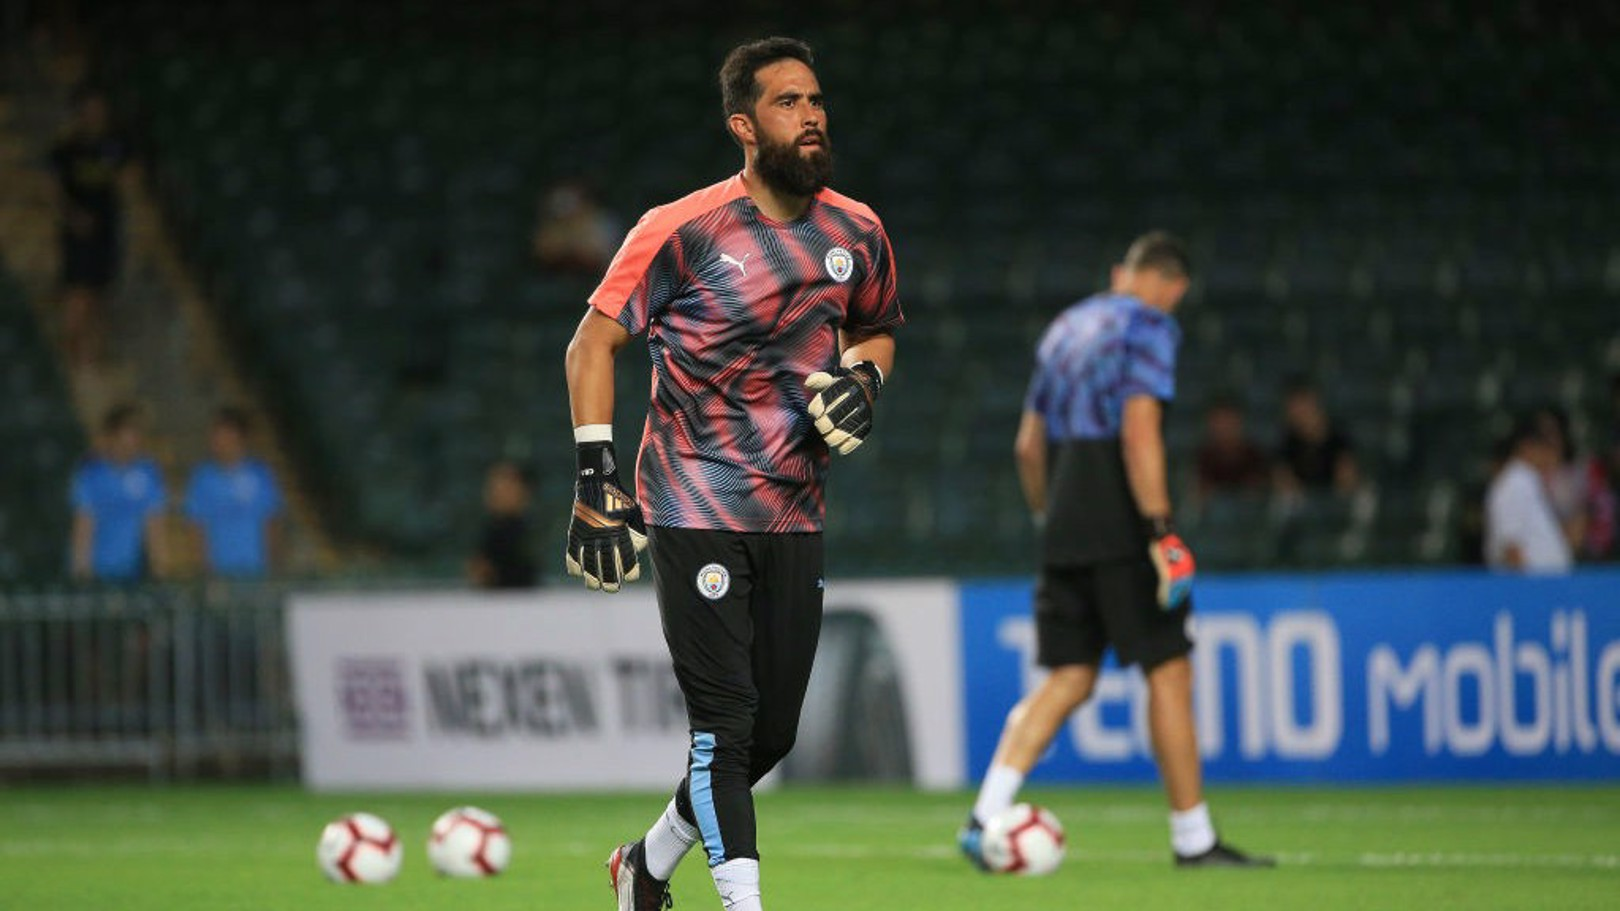 BACK ON TRACK: Claudio Bravo is set to feature in the Community Shield on Sunday